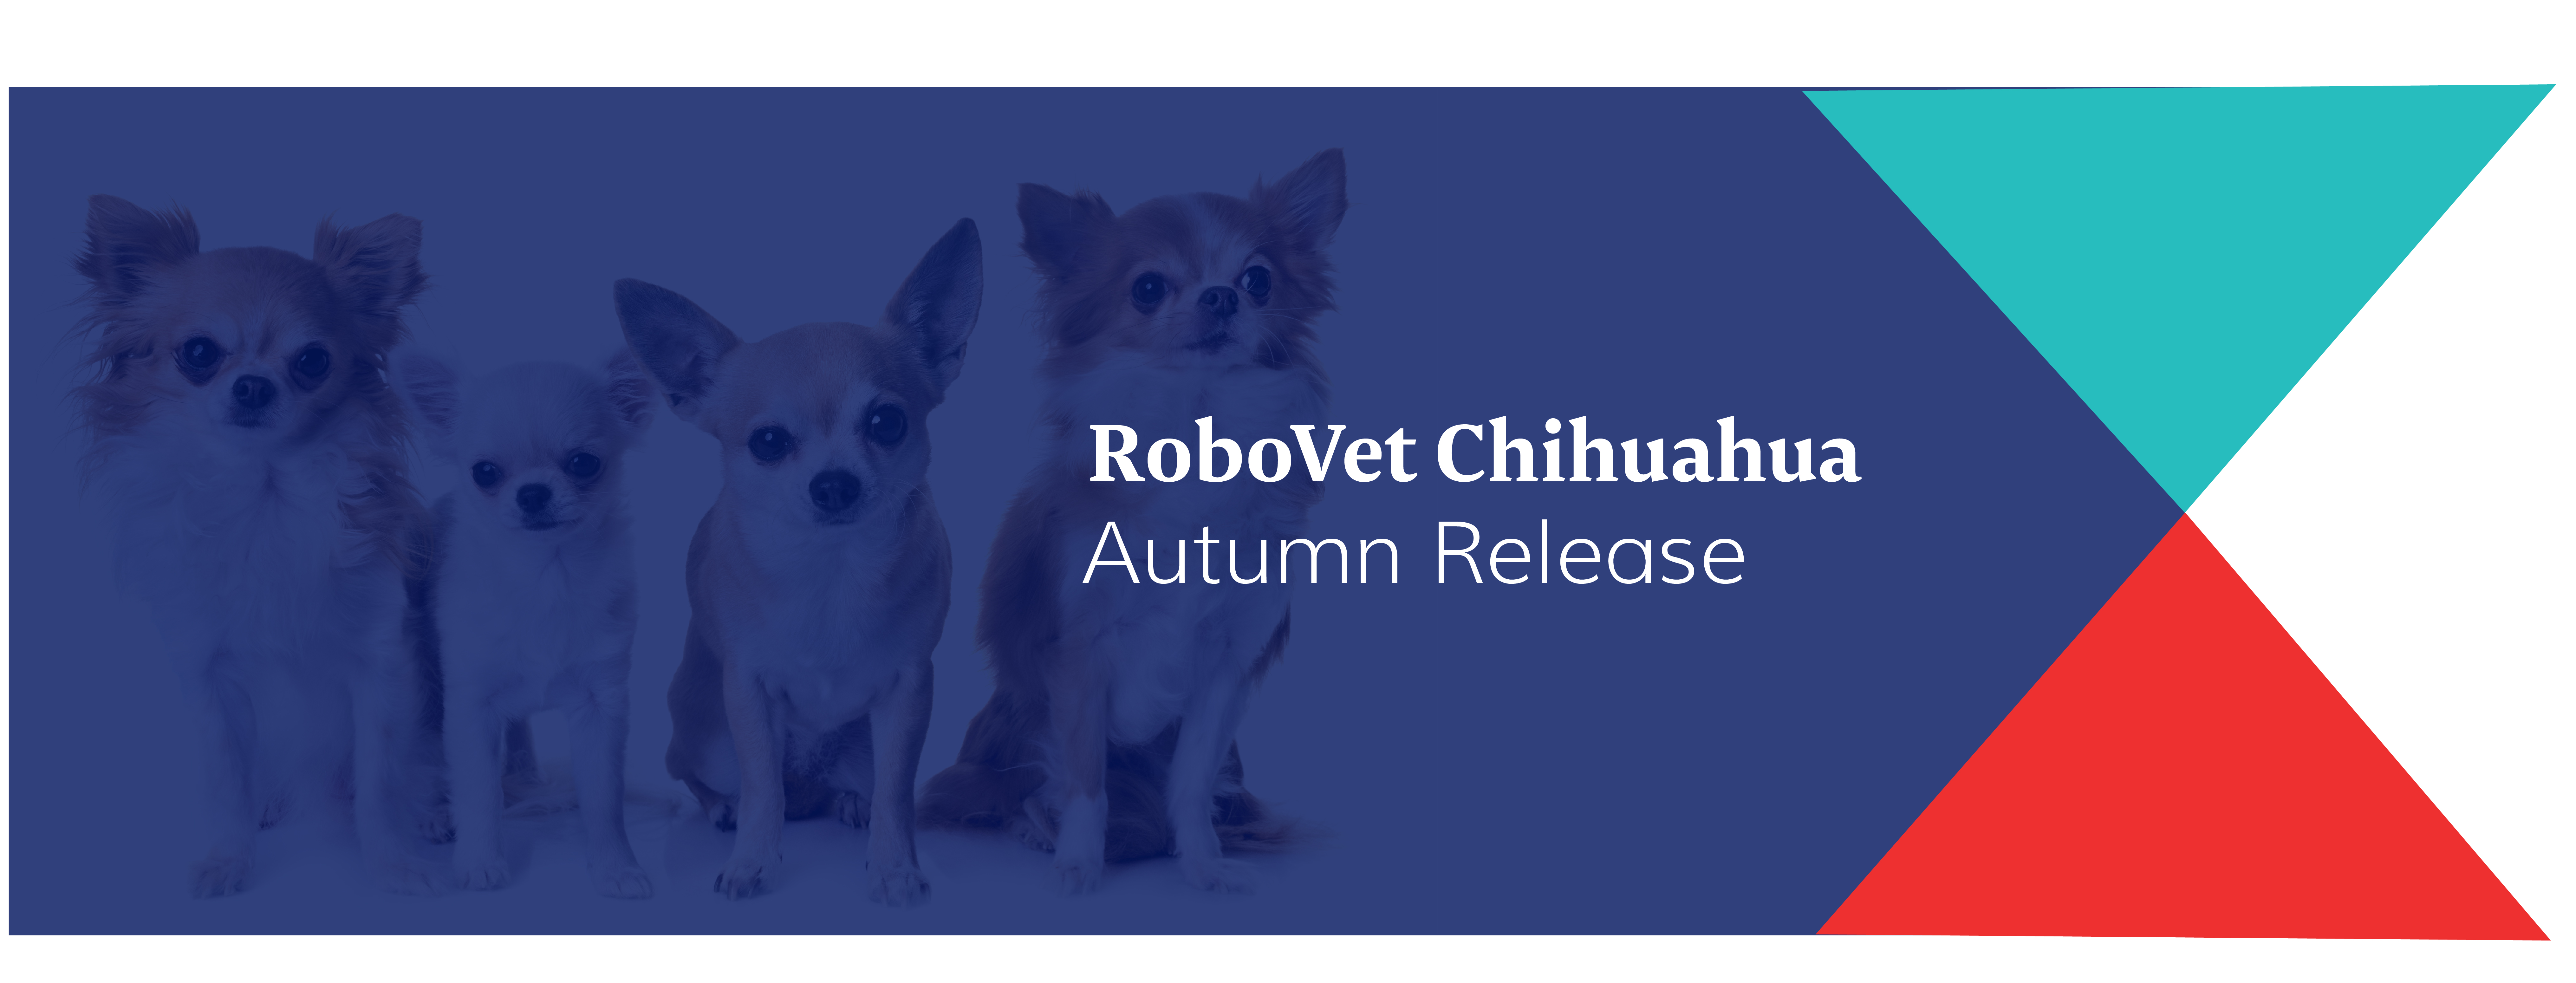 RoboVet Chihuahua Autumn Release 2019 is now available